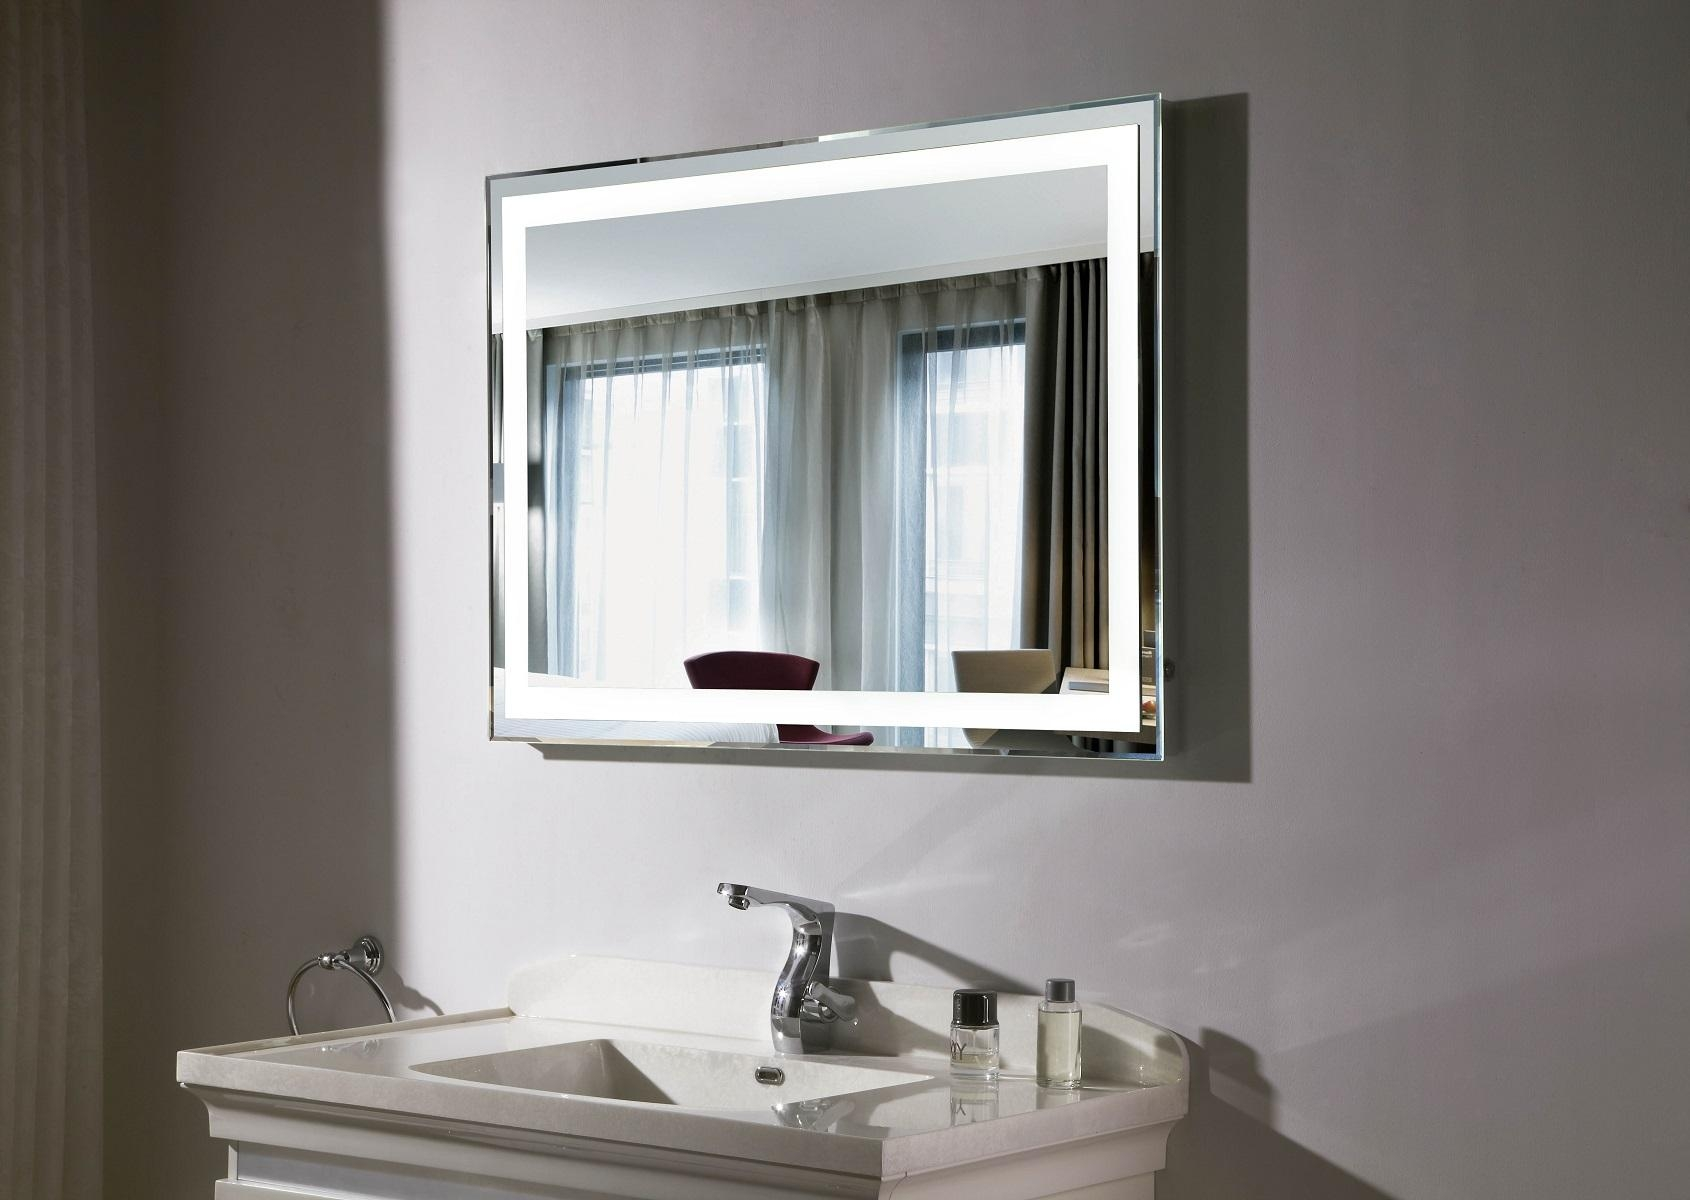 Modern Bathroom Vanity Led Light Crystal Front Mirror: 20+ Lighted Vanity Mirrors For Bathroom